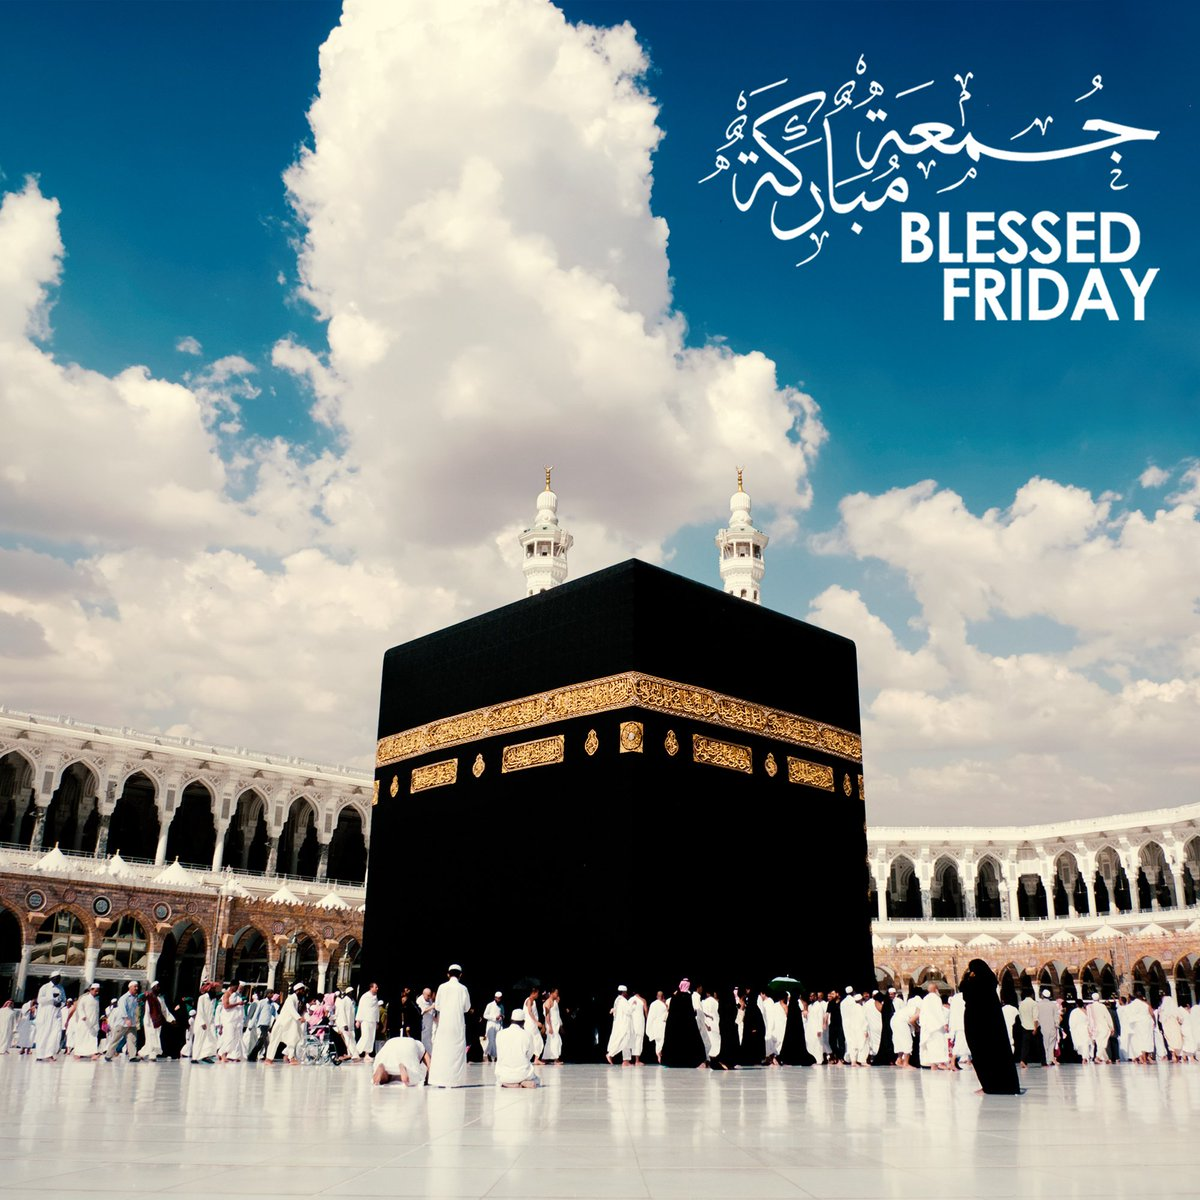 #BlessedFriday from the Holy Haram in Mecca. Named for prohibition against killing anything in its precincts. Hosted 95m pilgrims from around the world over the past 50 Hajj. Total area = 1.5m square meters, accommodates more than 2M worshipers. <br>http://pic.twitter.com/OW5u8jCU2x